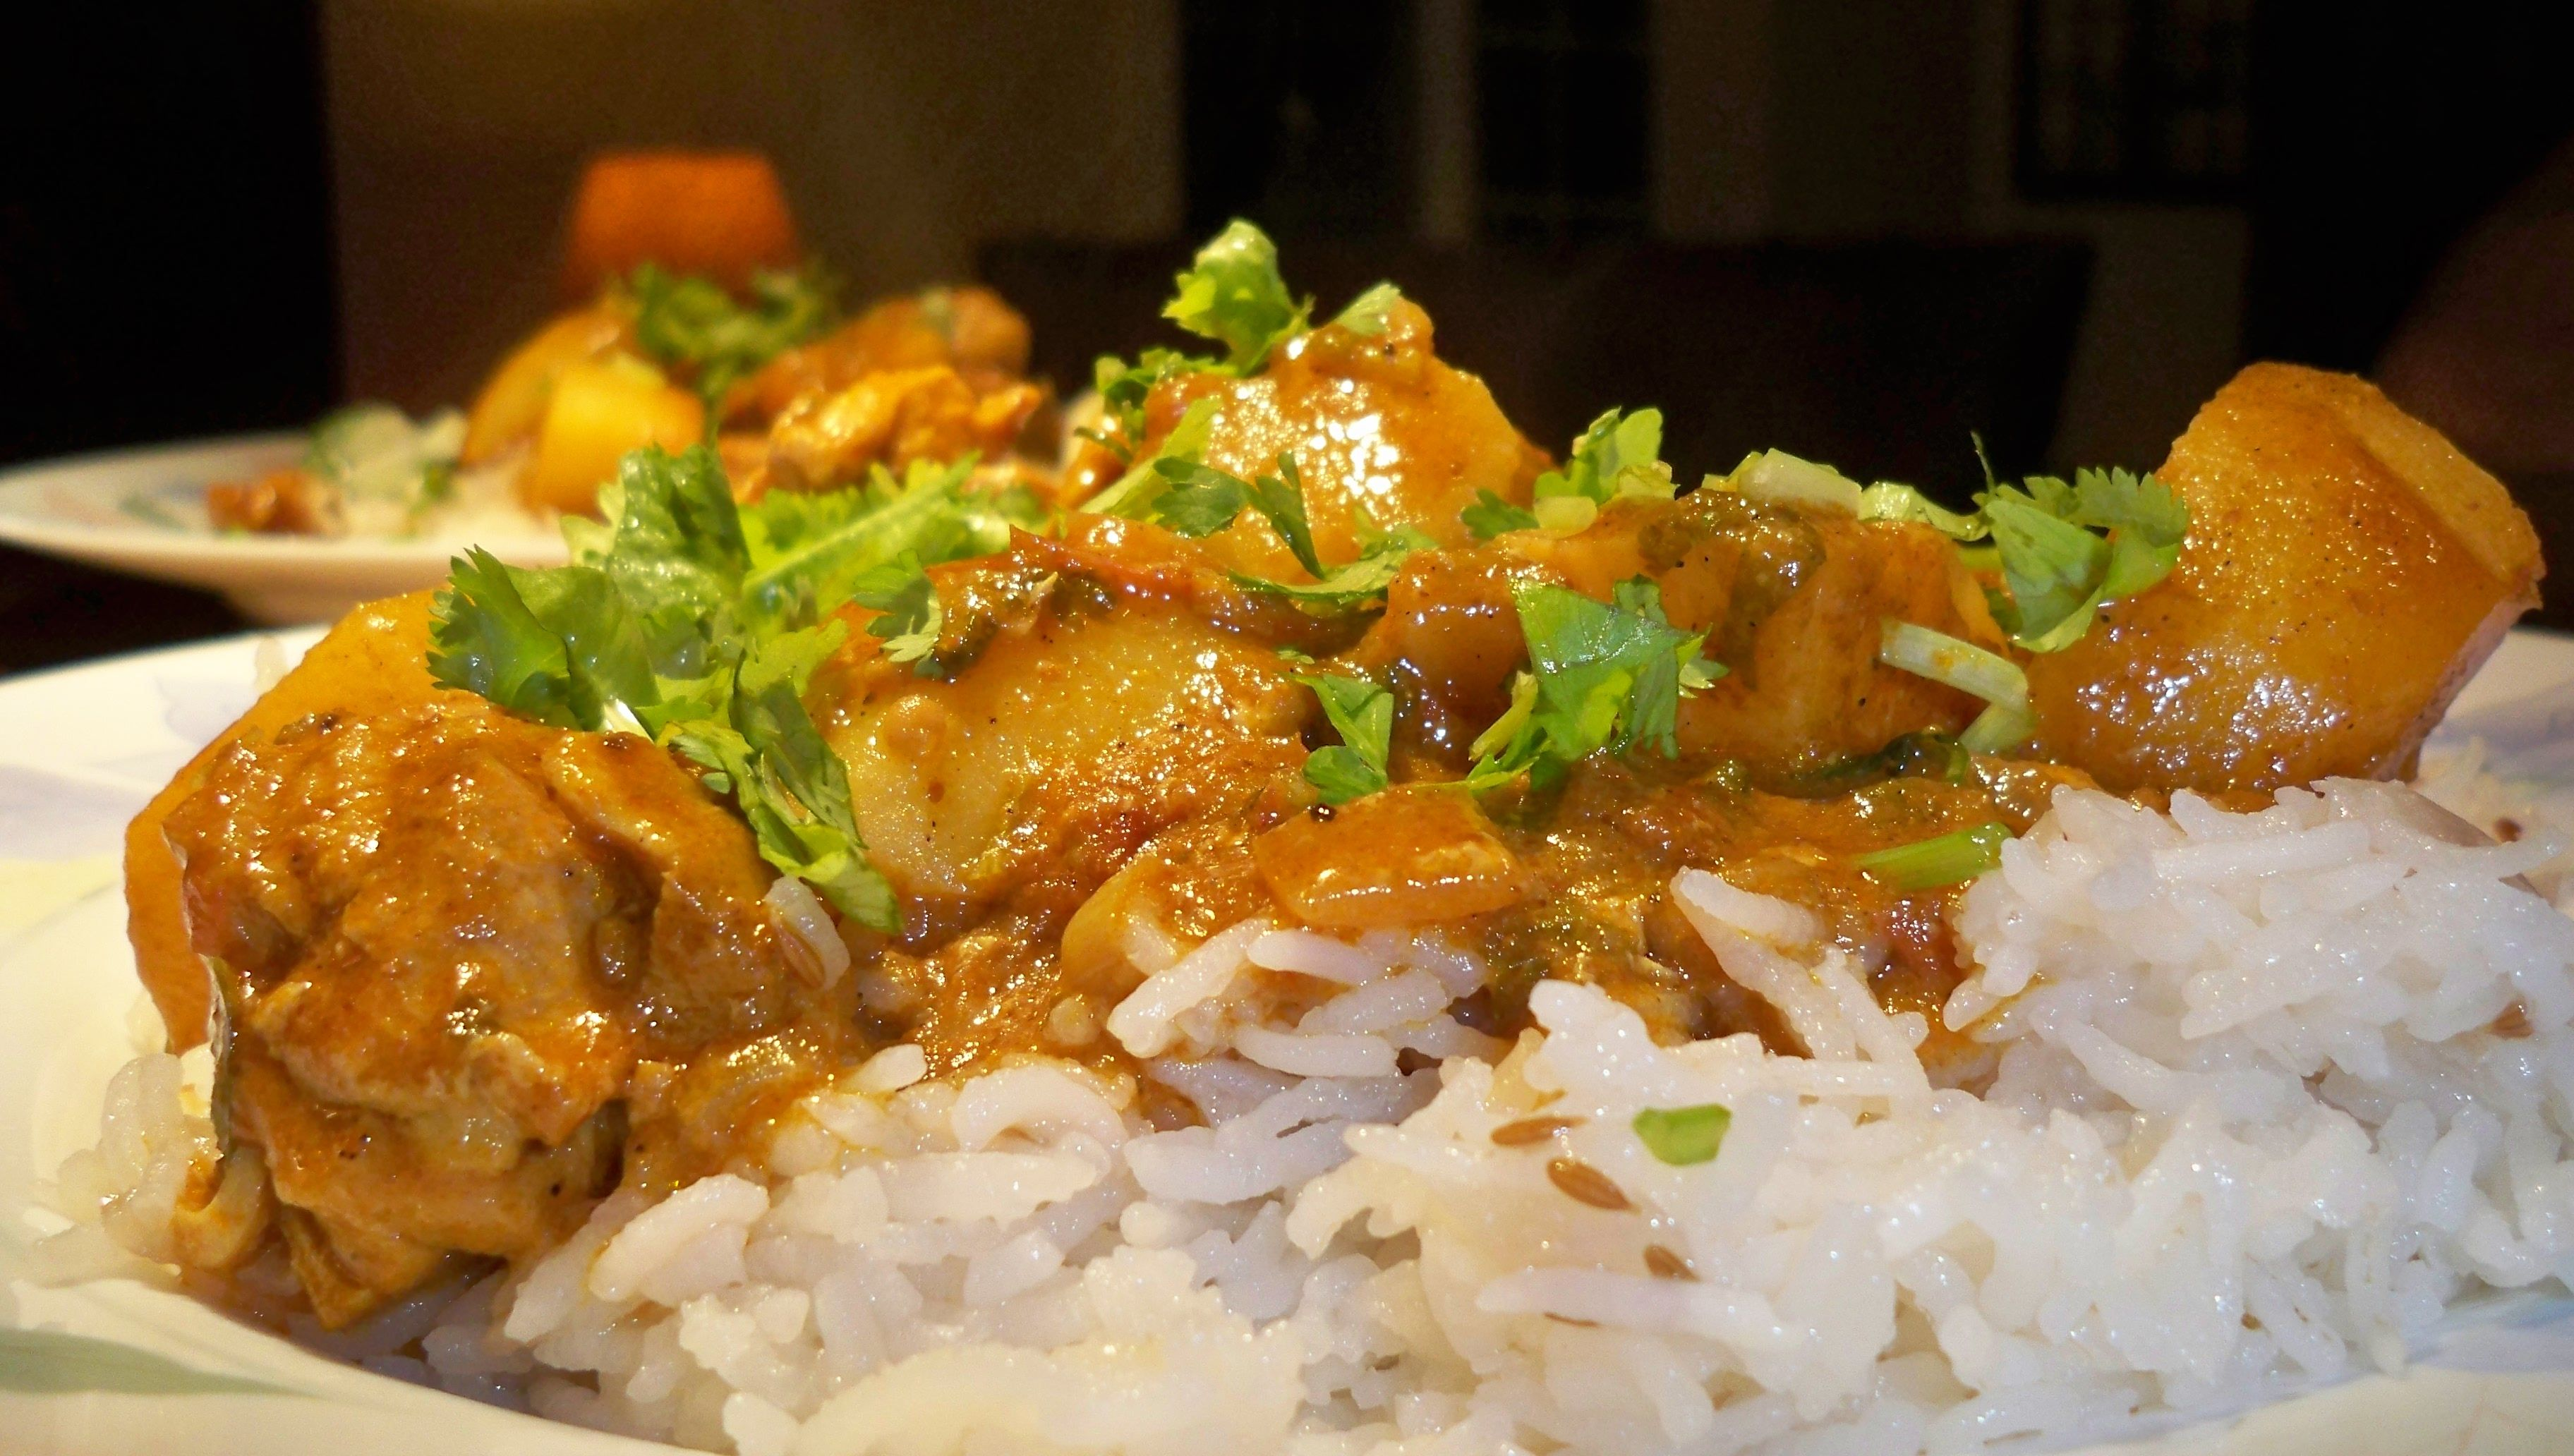 Chicken curry recipe my hindi heart blog posts pinterest food chicken curry recipe my hindi heart forumfinder Images